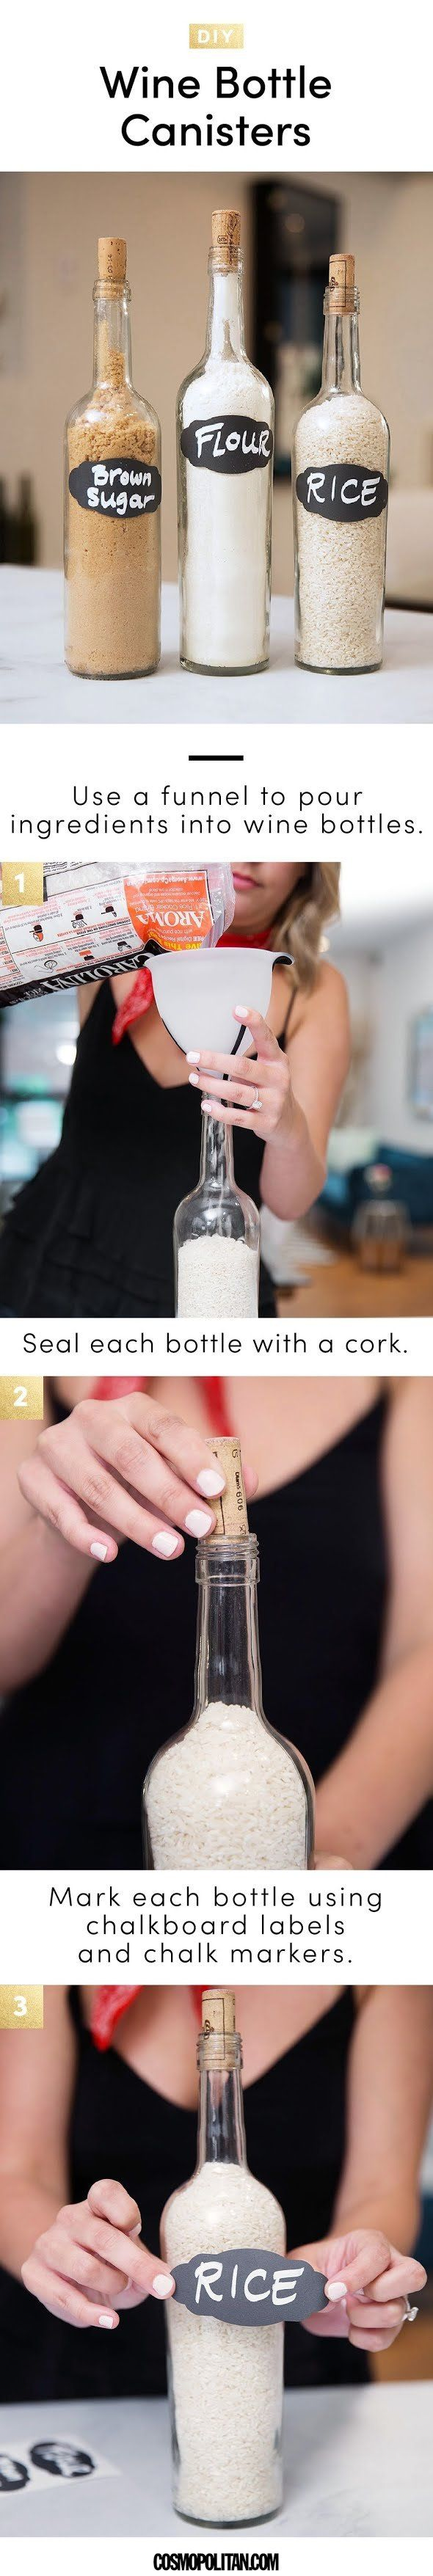 7 Easy Wine Crafts - Best DIY Wine Bottle, Cork, and Glass Project Ideas